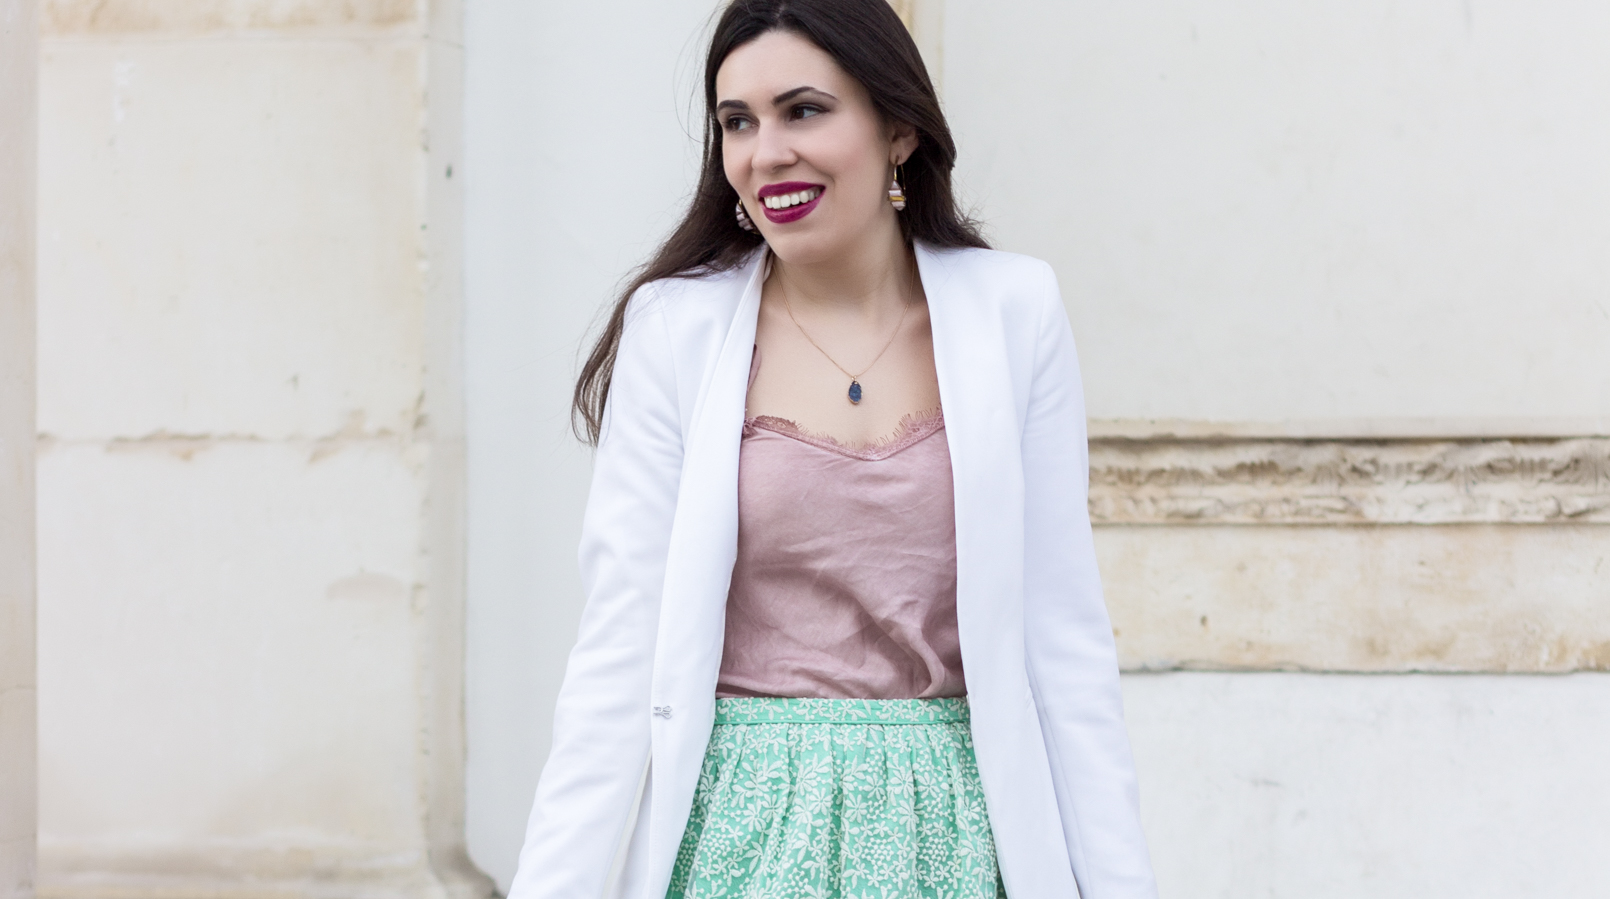 Le Fashionaire People pass through our lives for a reason pink lace top hoops earrings amethyst purple parfois earrings gold necklace grey stone lefties white zara blazer 9391F EN